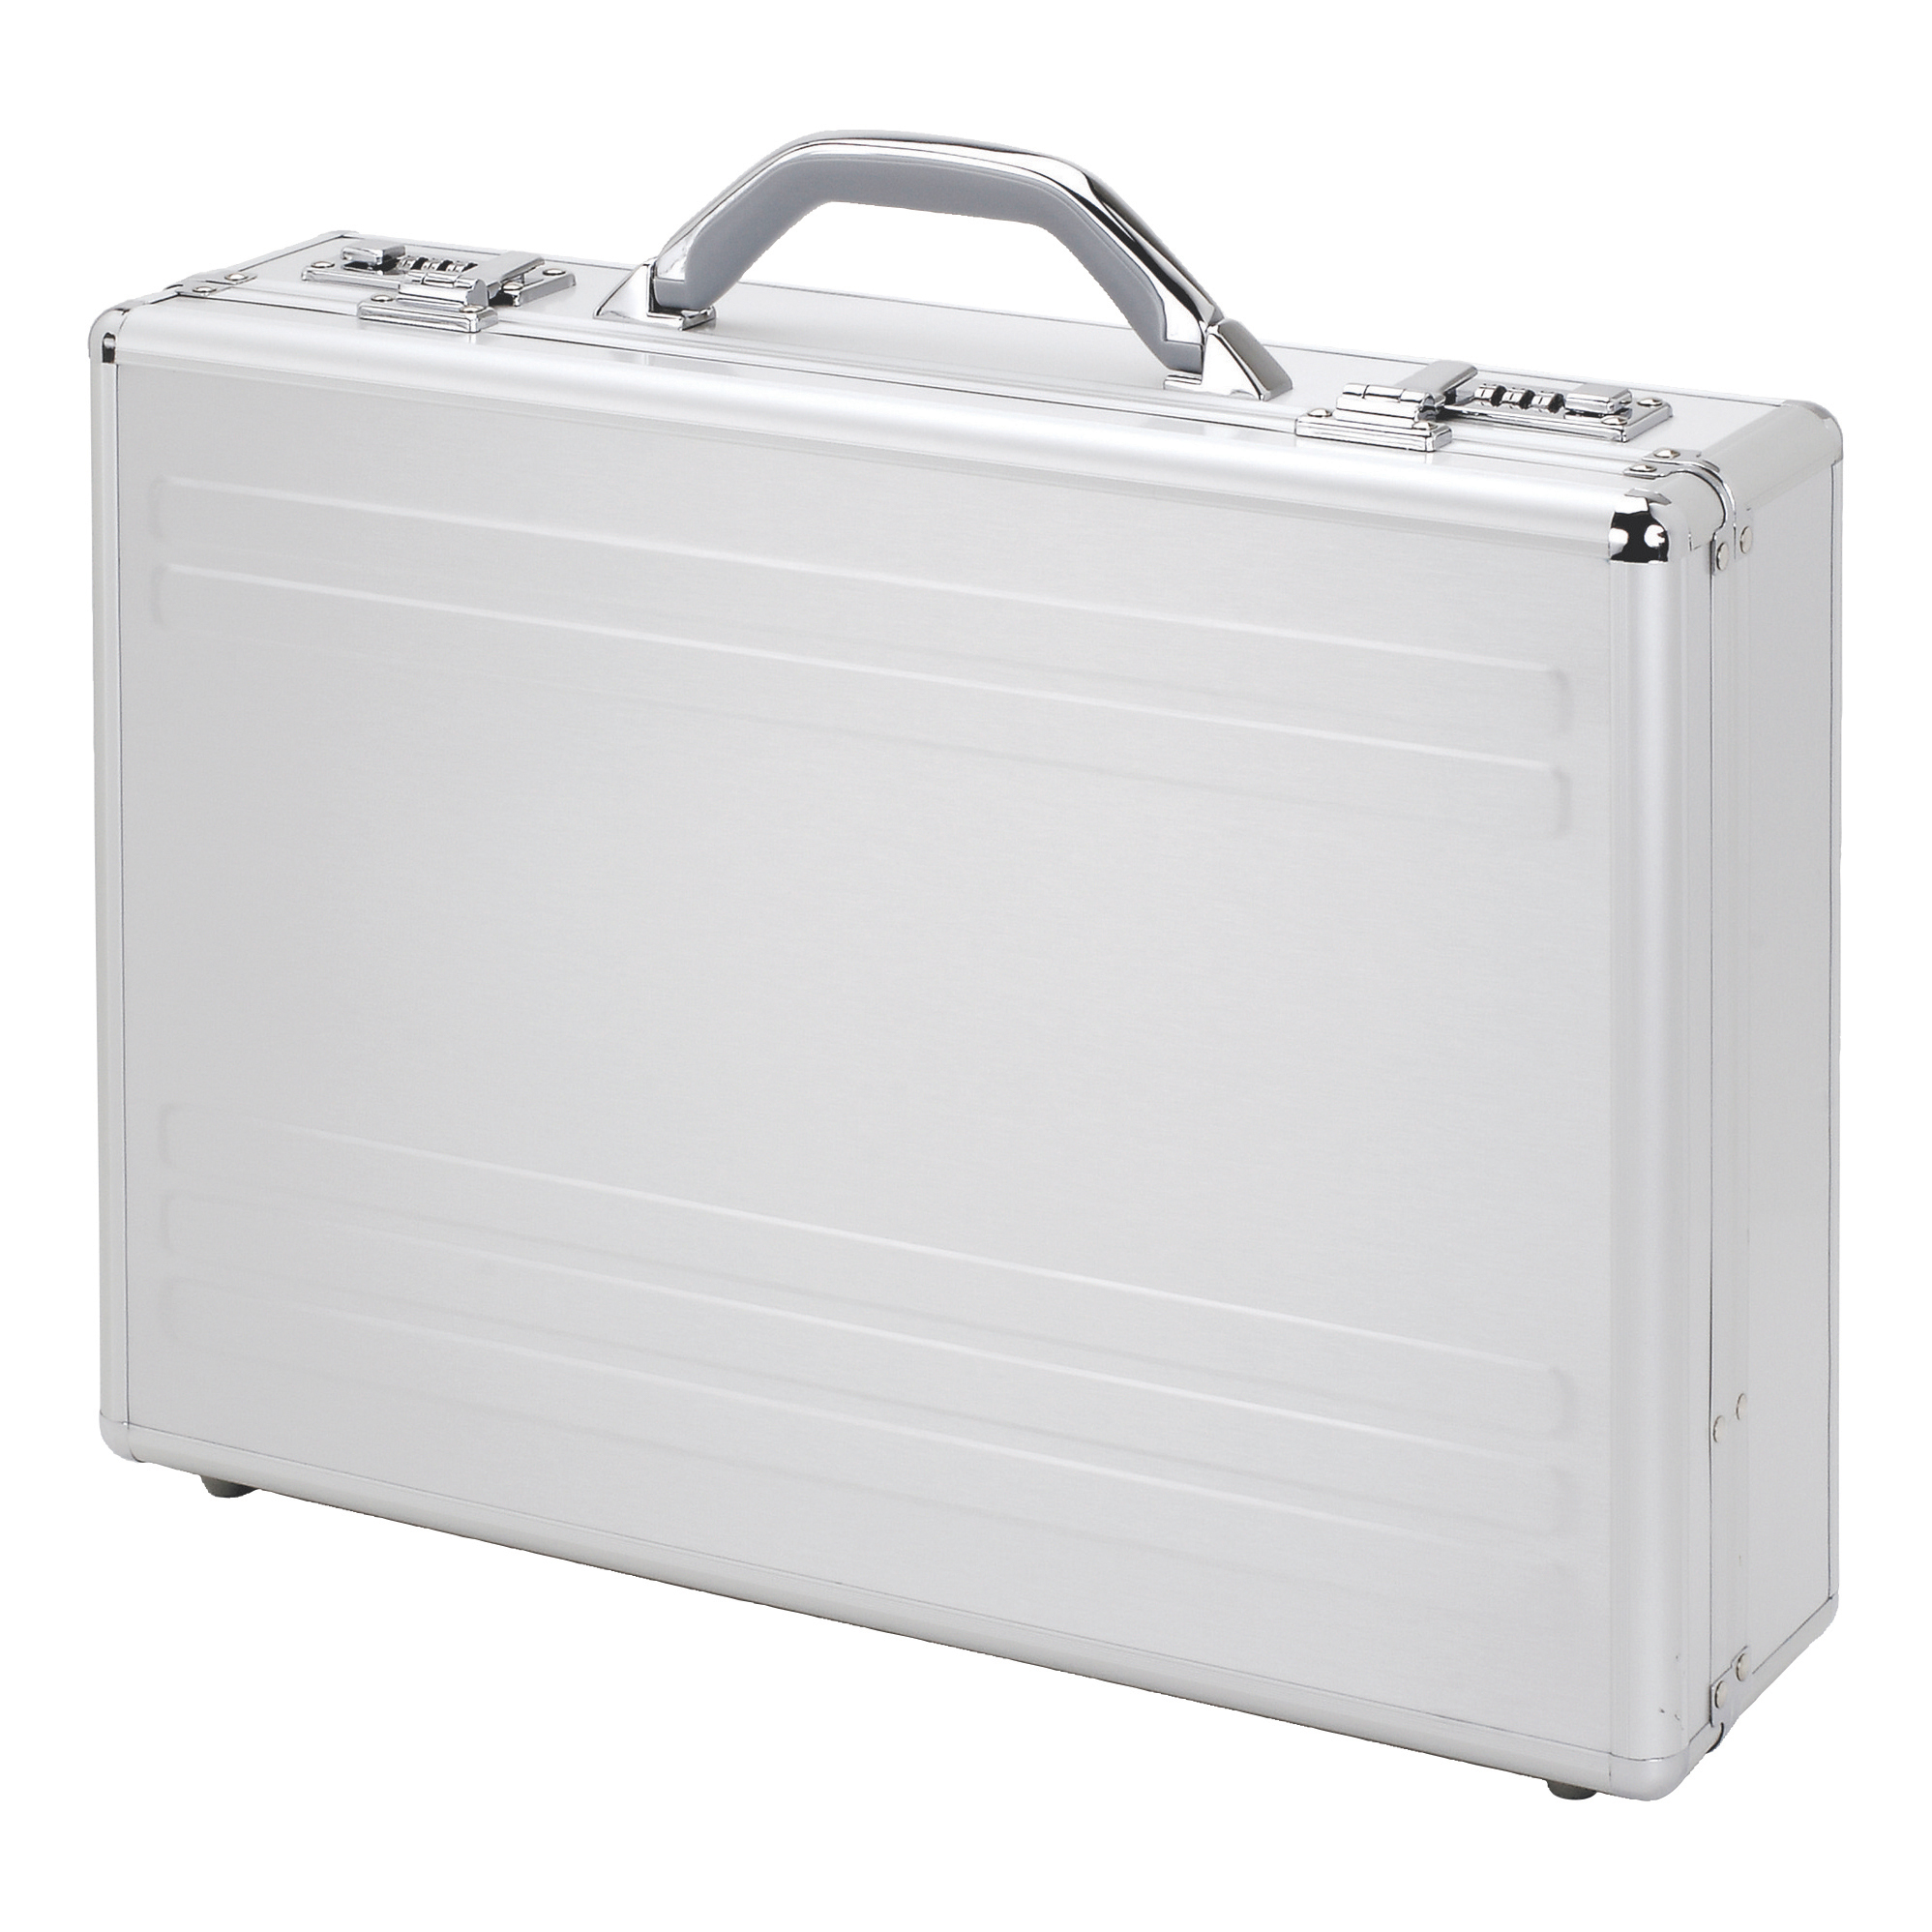 Alumaxx Kronos Laptop Attache Case with Padding 2 Combination Locks Silver Aluminium Ref 45131